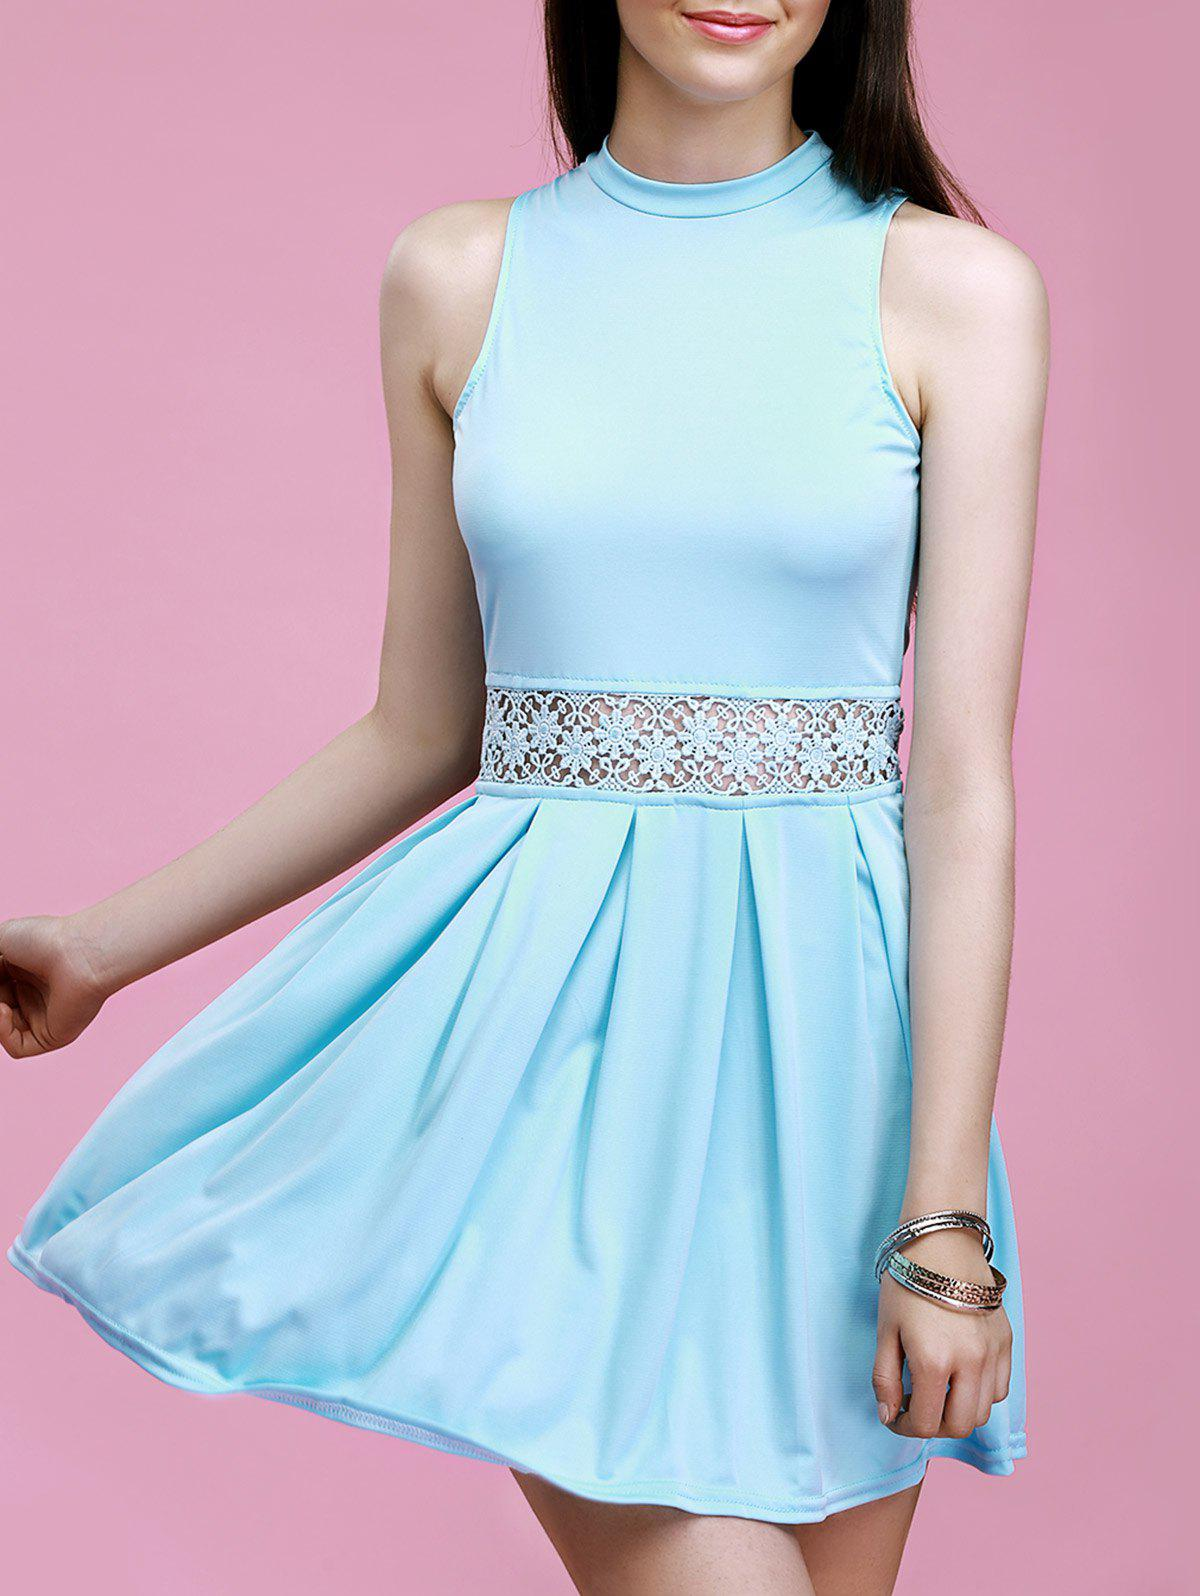 Lace Spliced Hollow Out Solid Color Flare Dress - LIGHT BLUE XL